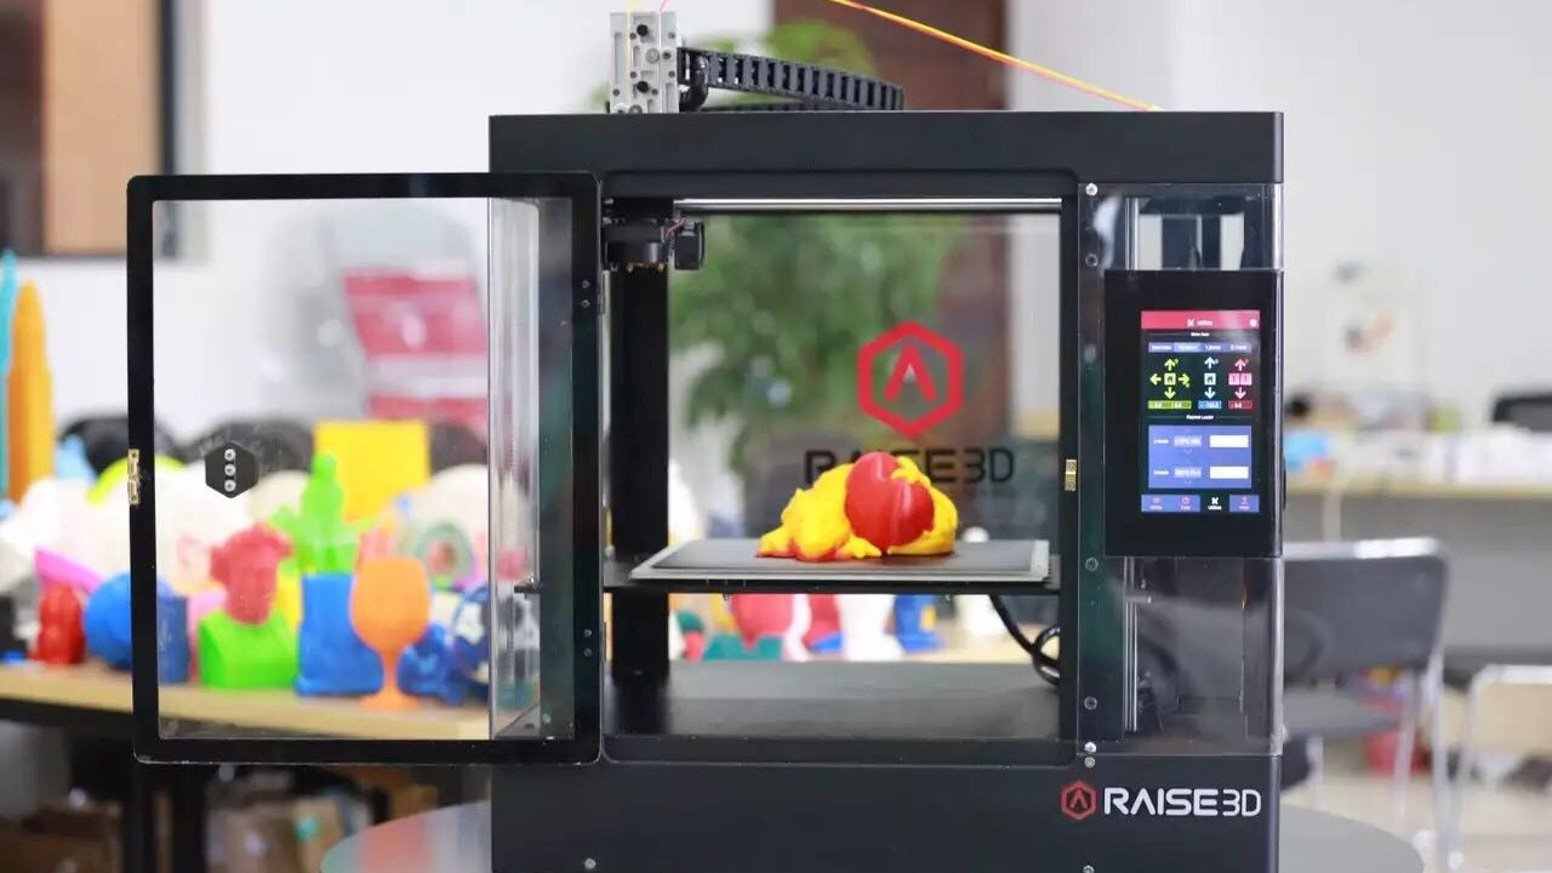 Raise3D N2: Review the Facts of this 3D Printer | All3DP